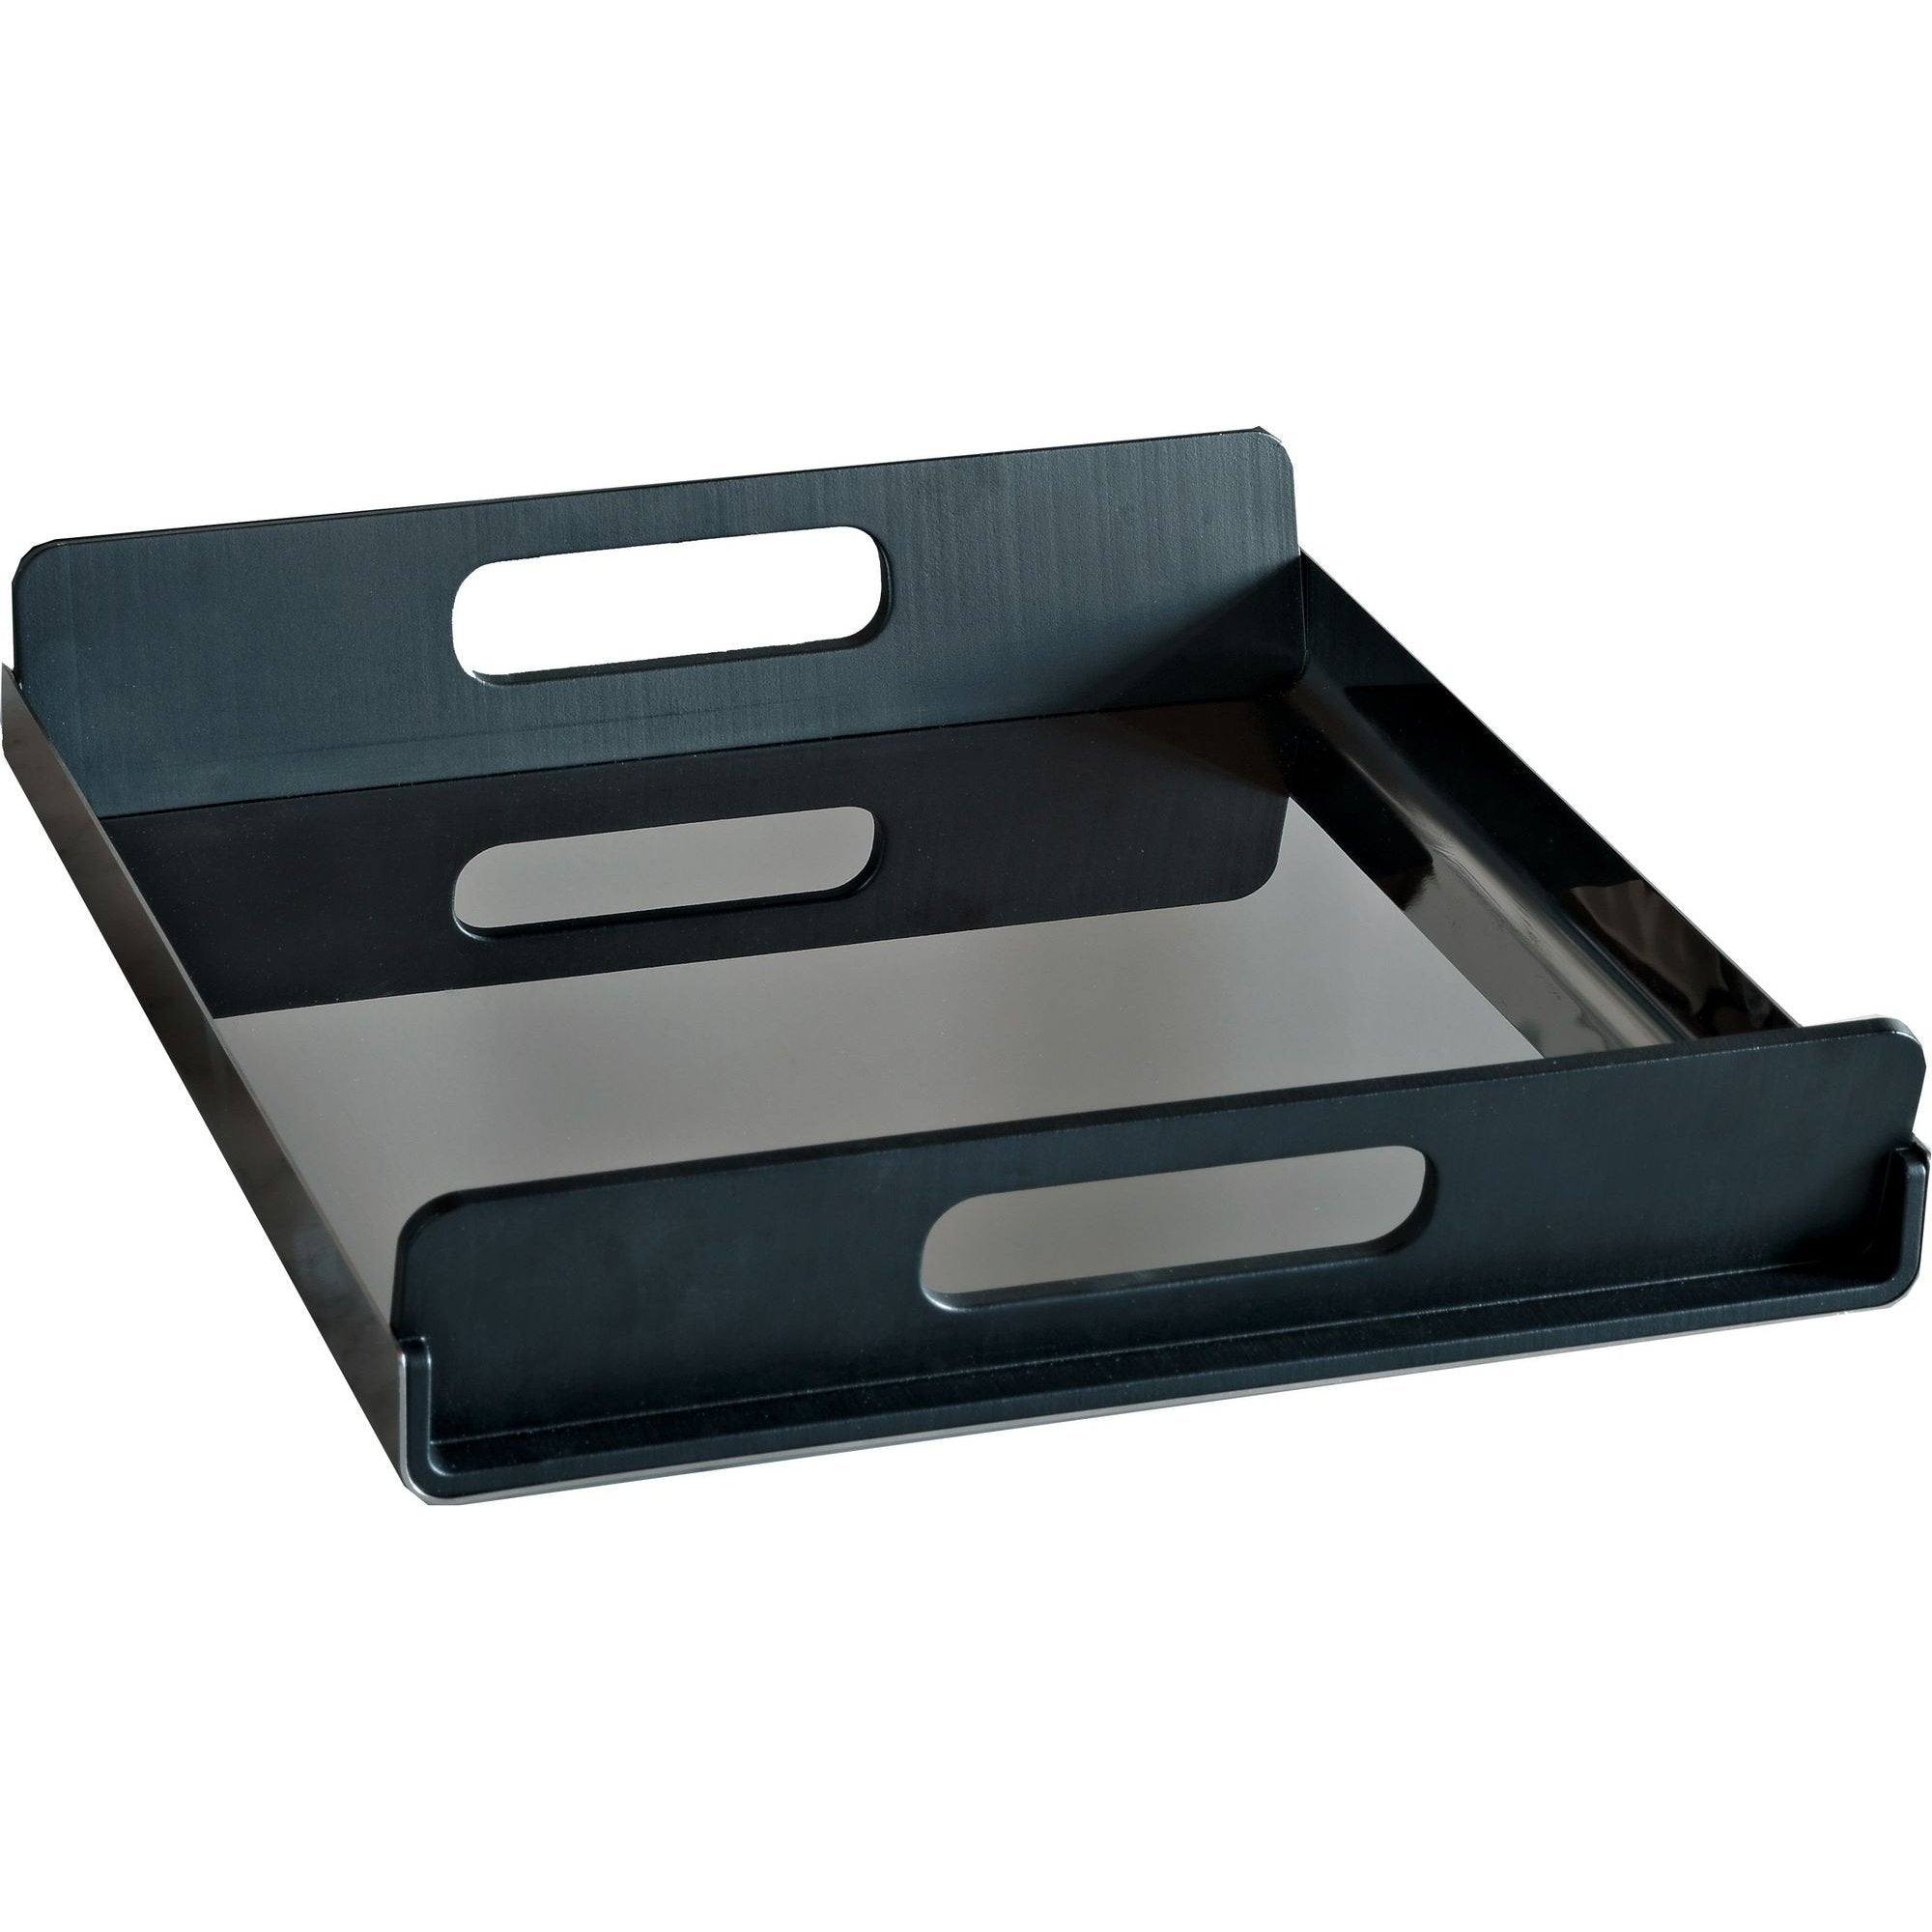 Rectangular tray with handles - Vassily